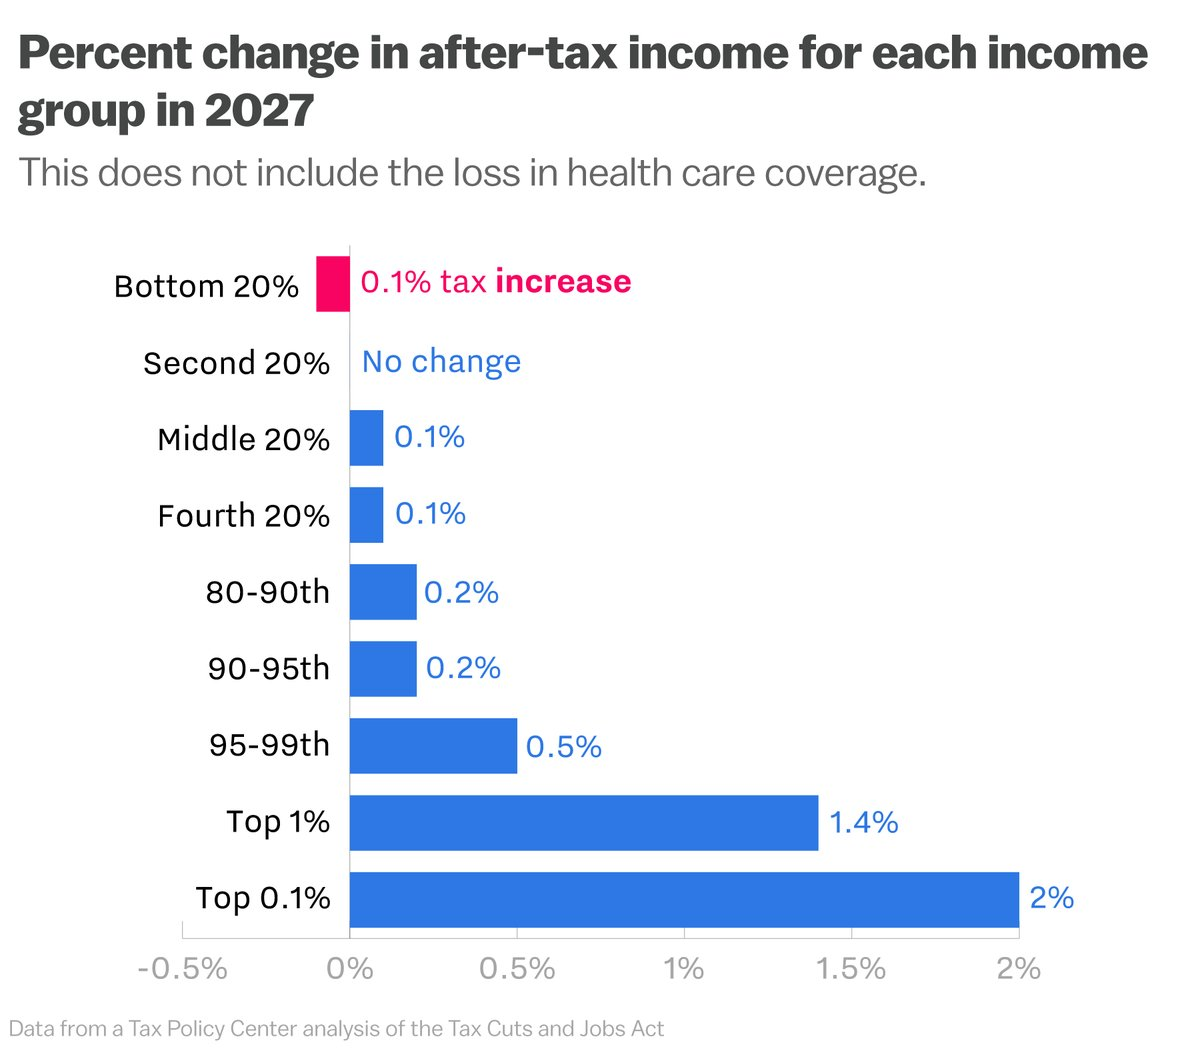 Chart by Vox's Alvin Chang